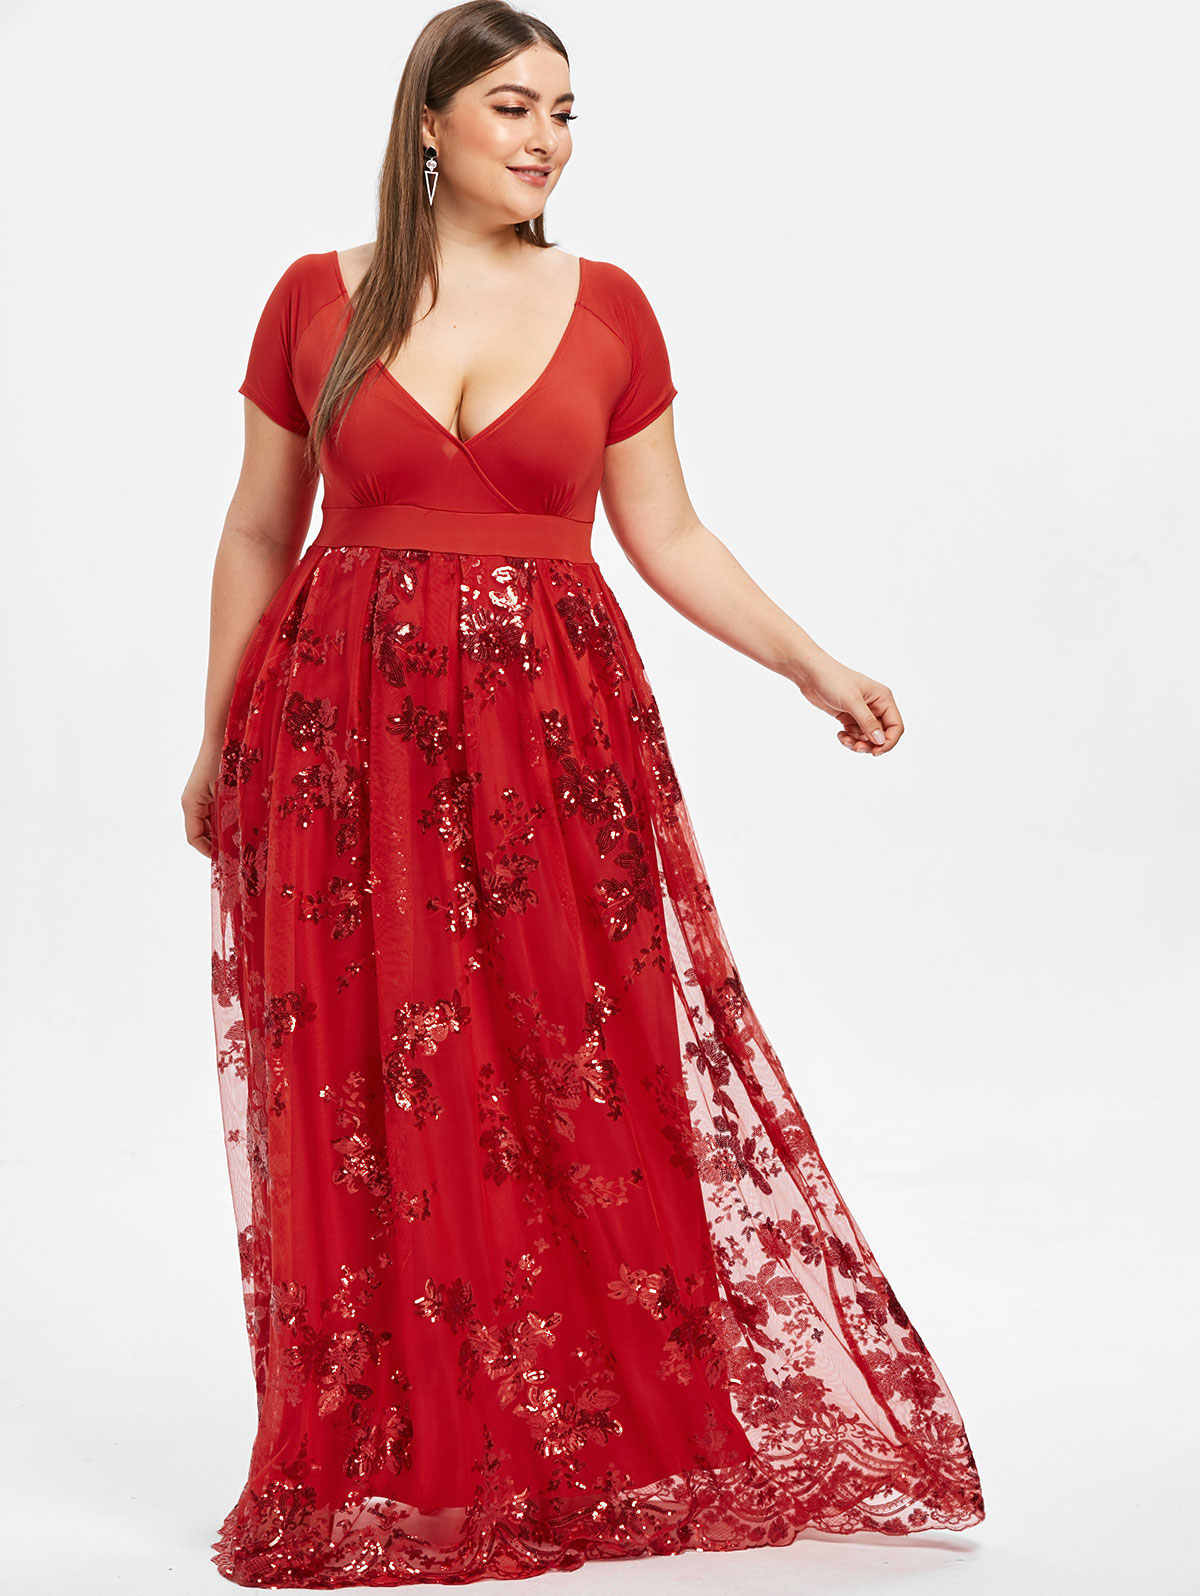 4a8f9361e9628 Wipalo Women Plus Size 5XL Floral Sparkly Maxi Prom Sequined Dress Sexy  Deep V Neck Short Sleeves Elegant Party Dress Vestidos